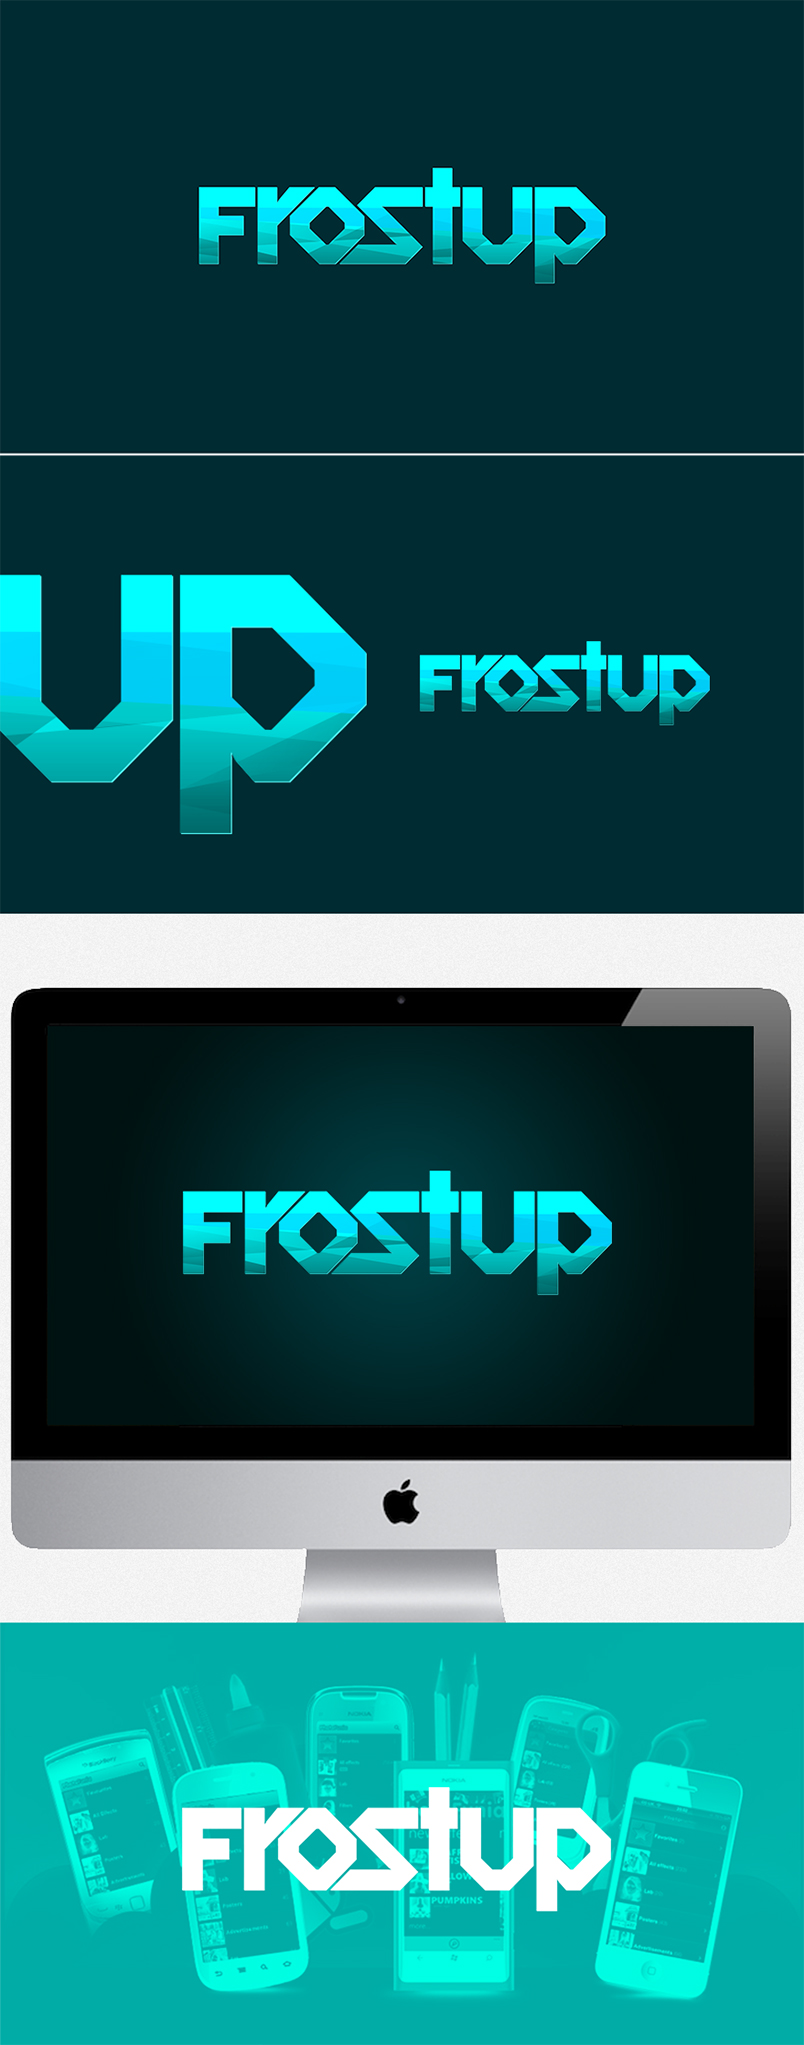 FrostUP